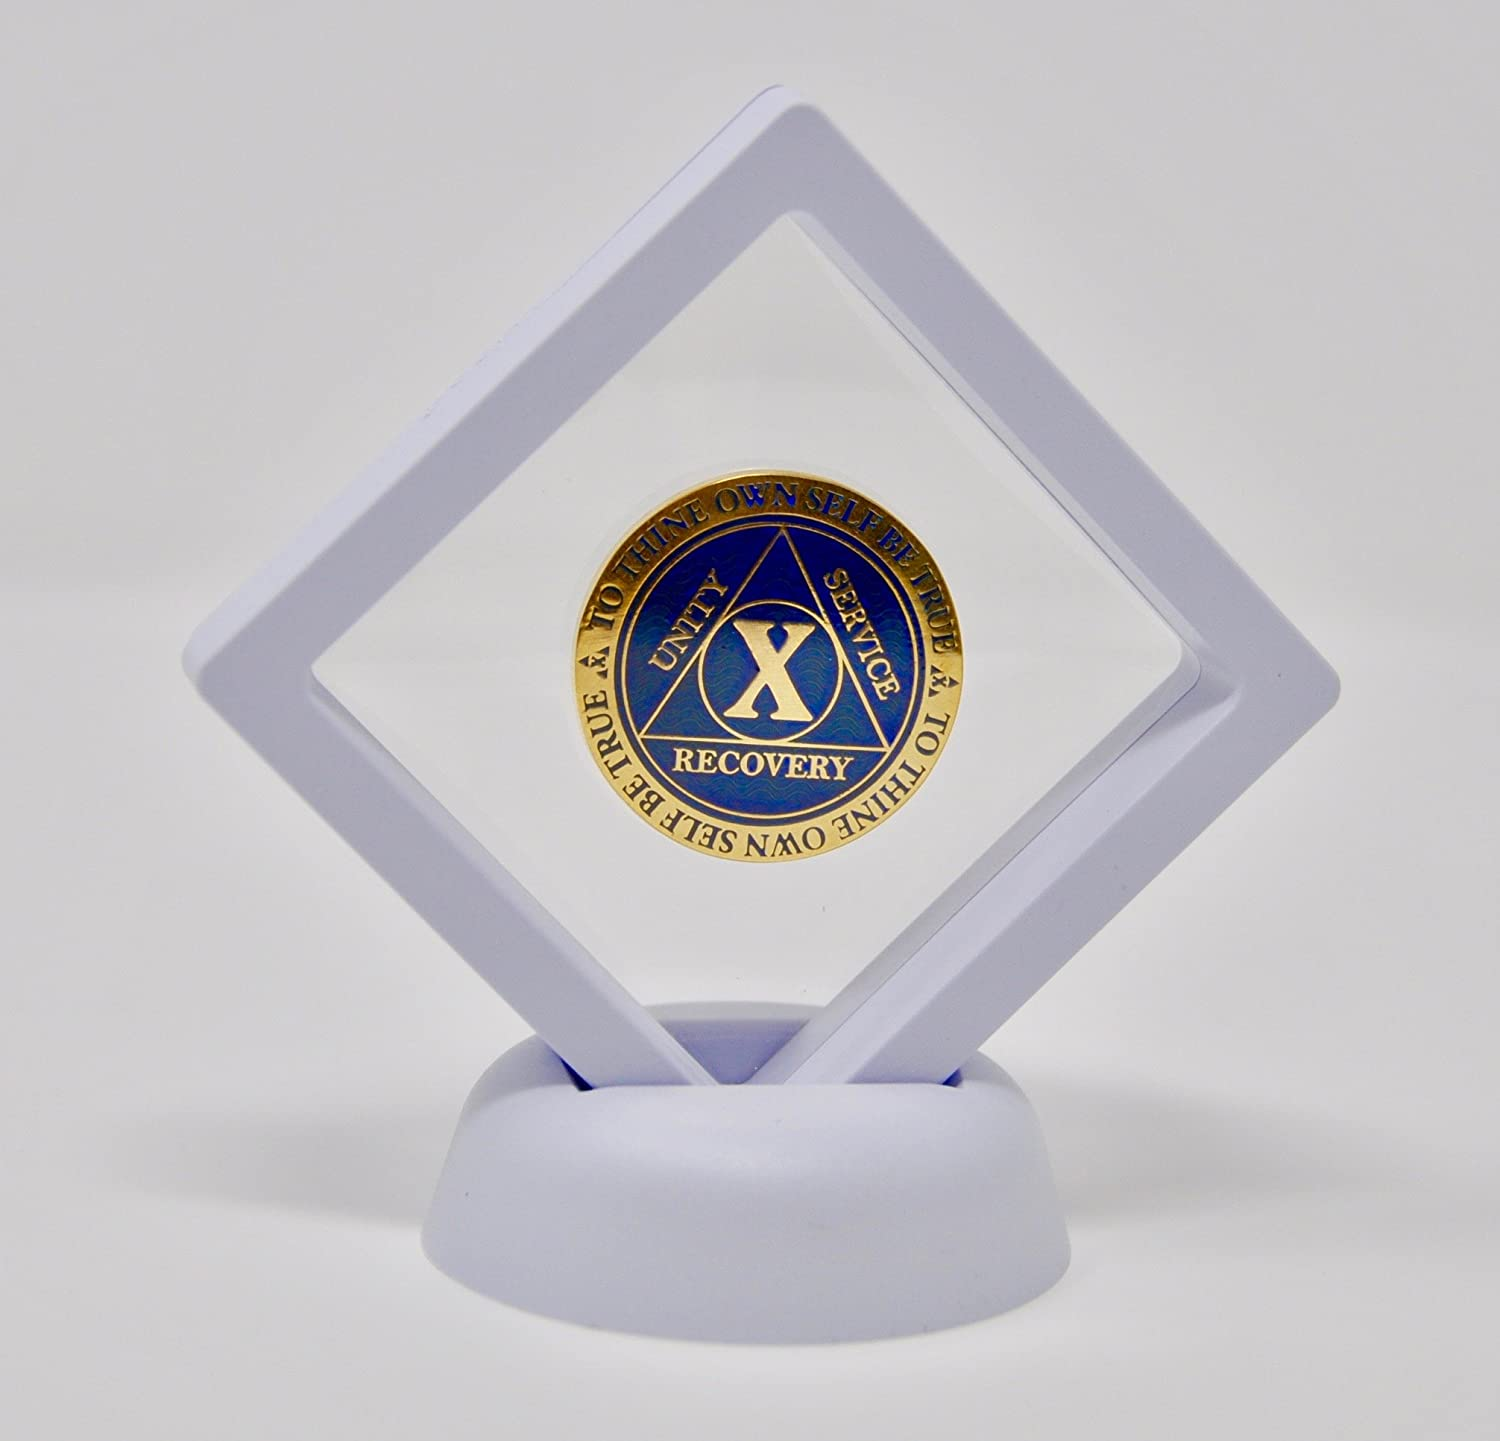 Diamond Square AA Medallion Challenge Coin Chip Display Stand Holder Magic Suspension Box White SM 2.75 in x 2.75 in